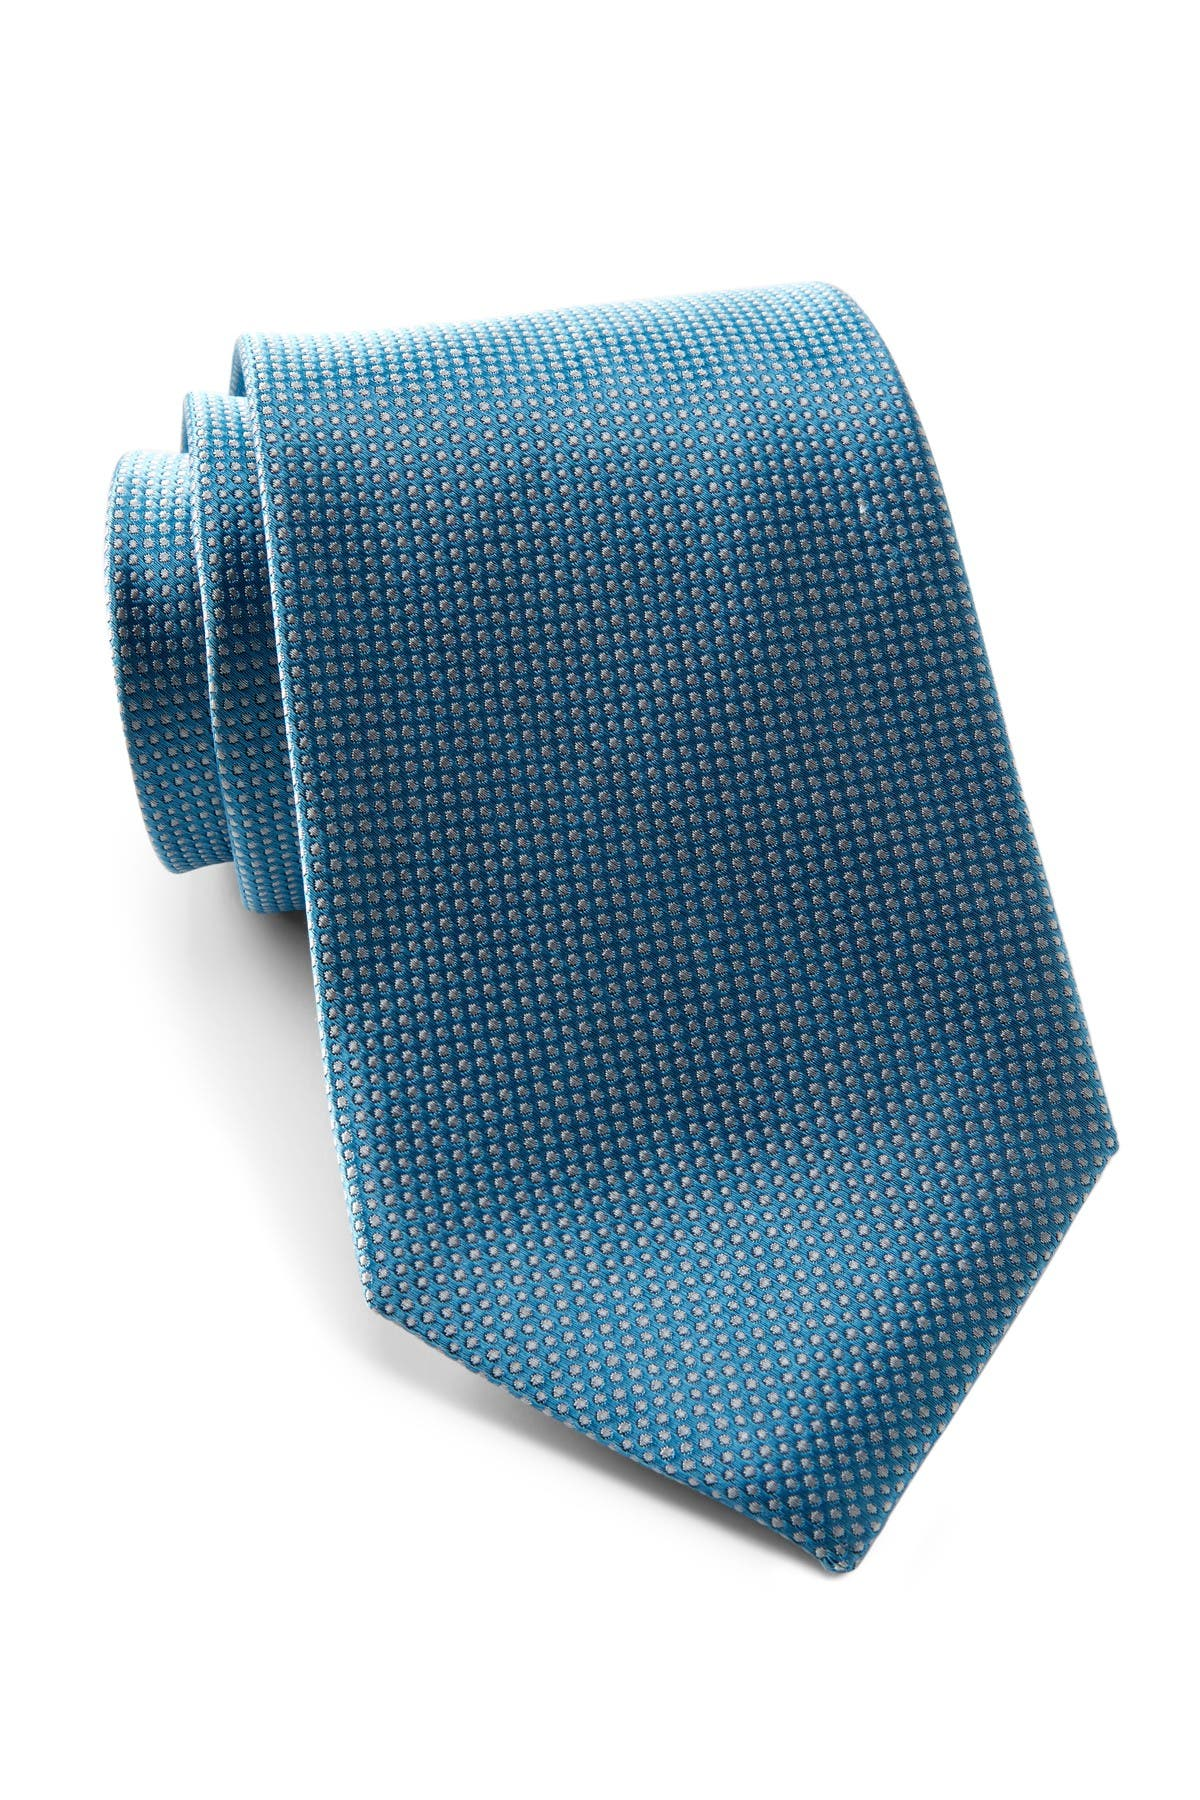 Image of Tommy Hilfiger Silk Textured Non-Solid Tie